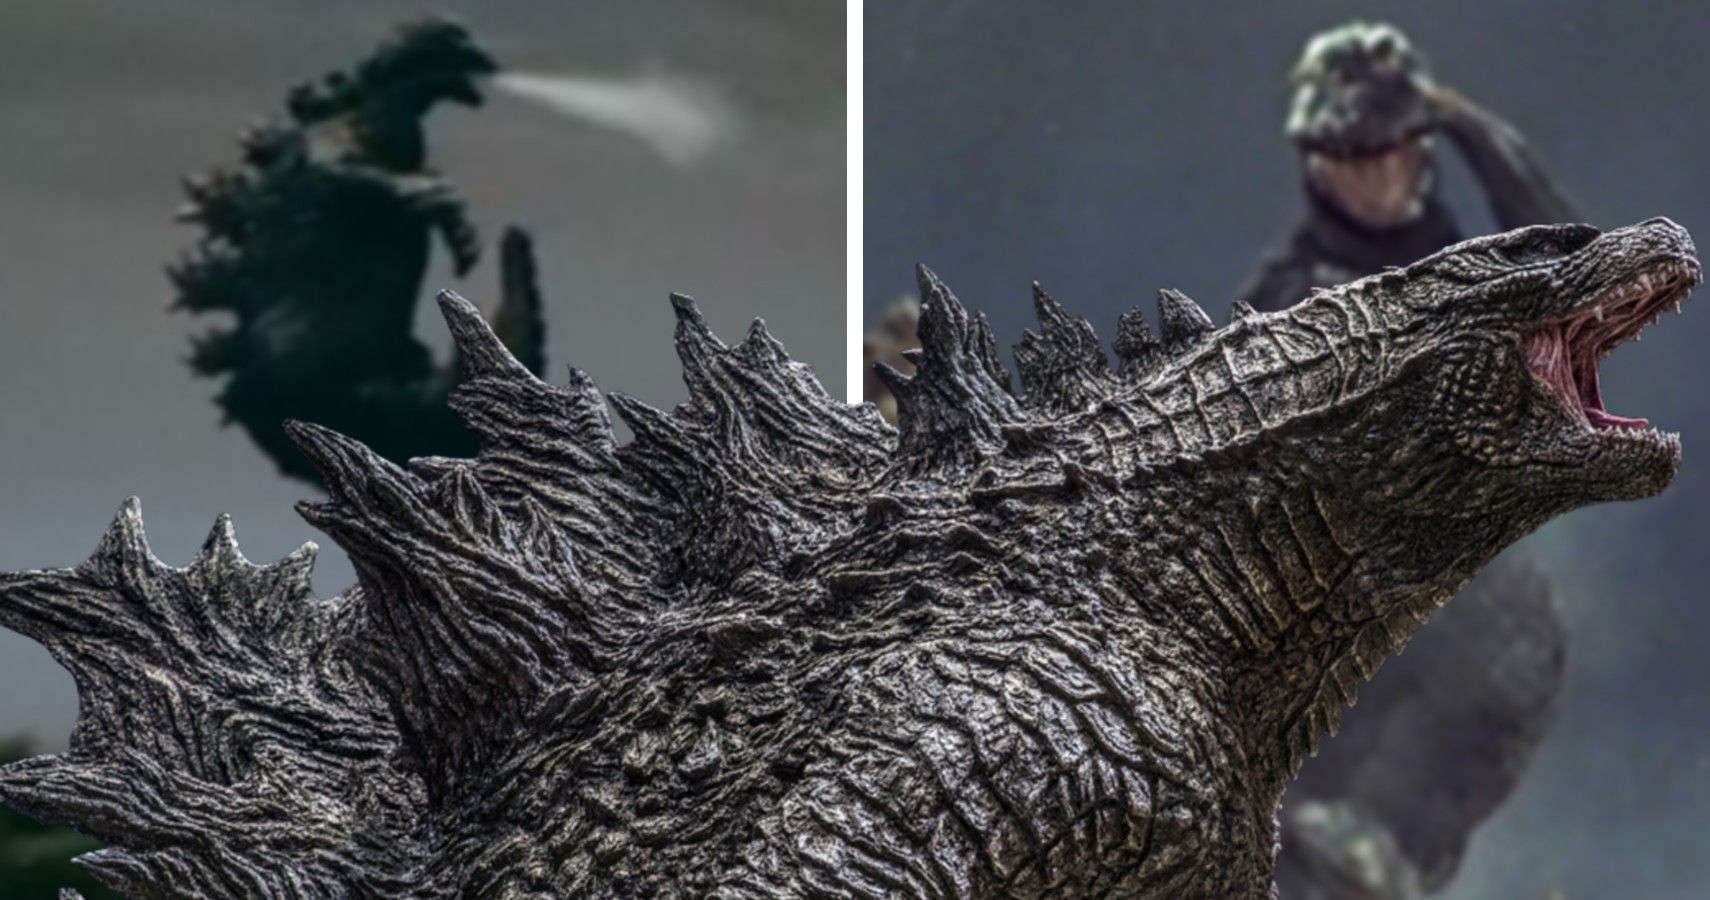 Godzilla: The 10 Most Hilarious Scenes In The Entire Franchise